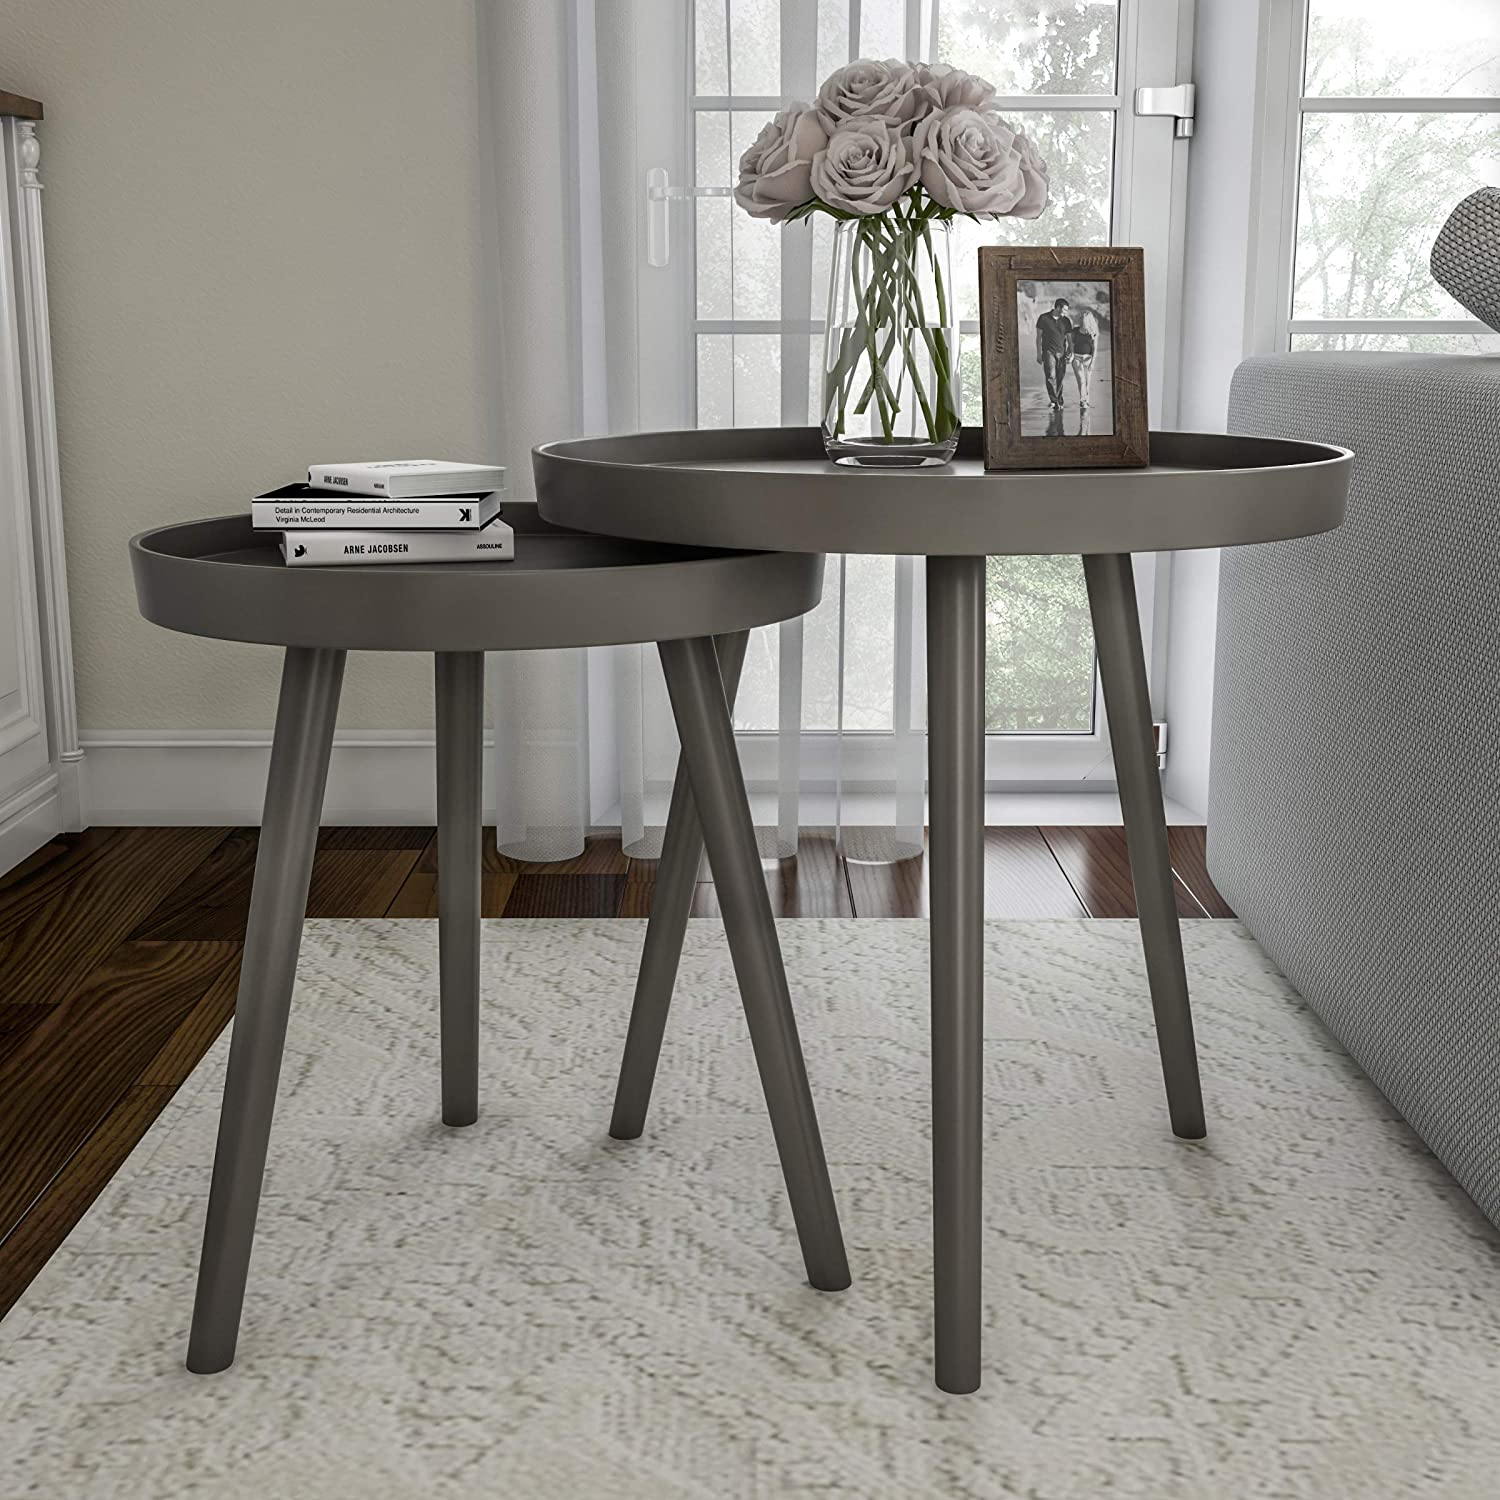 Lavish Home Nesting End Set of 2 Round Mid-Century Modern Accent Table, Gray